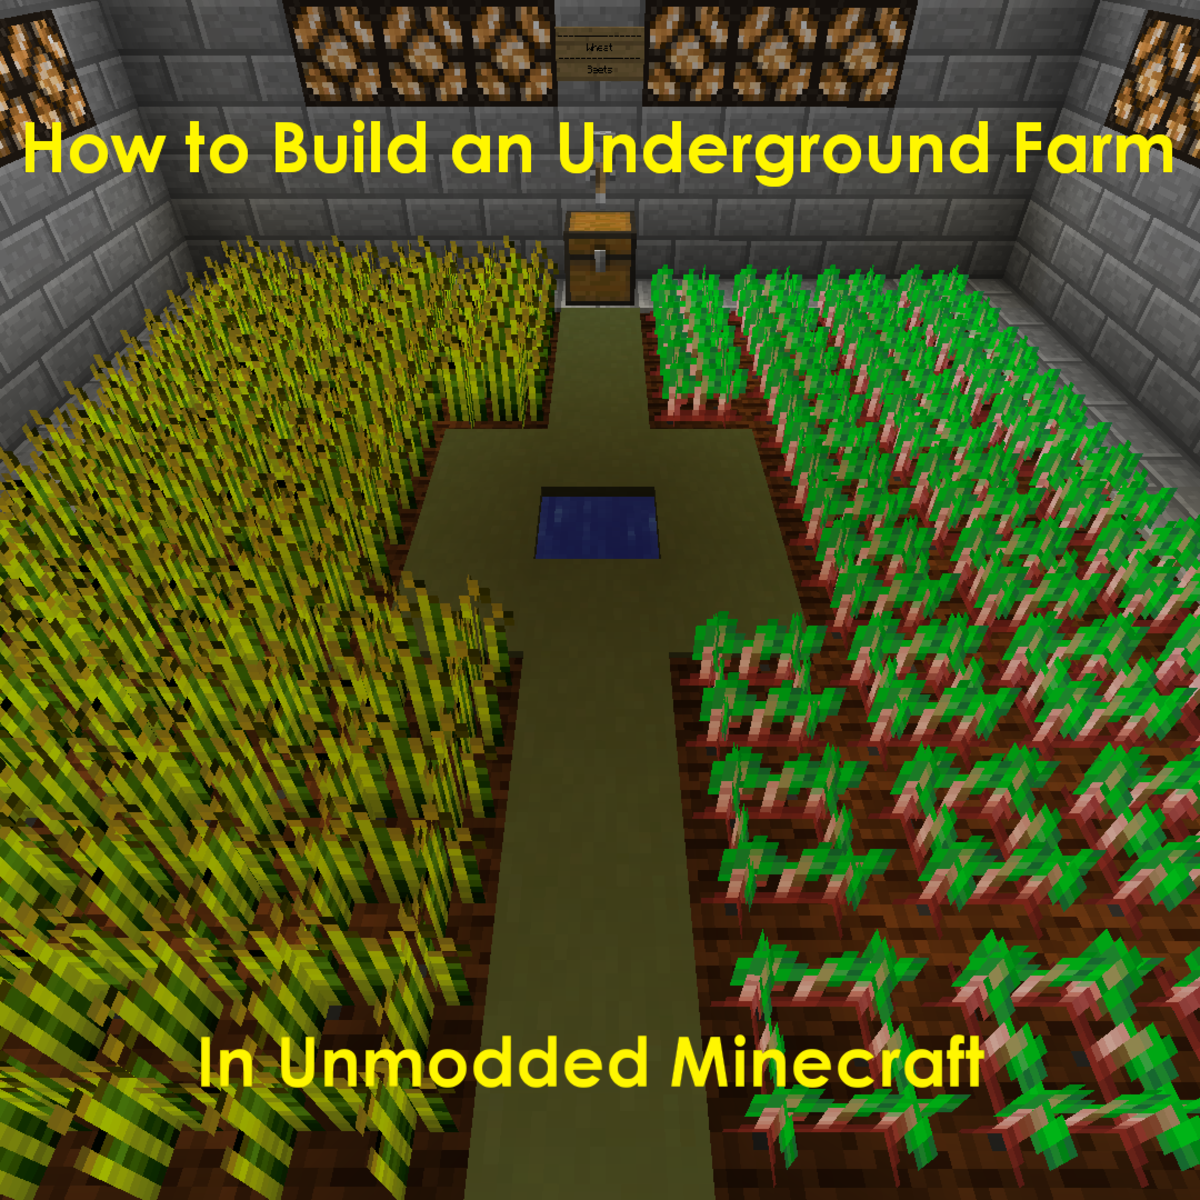 Learn the ins and outs of building an underground farm in Minecraft!